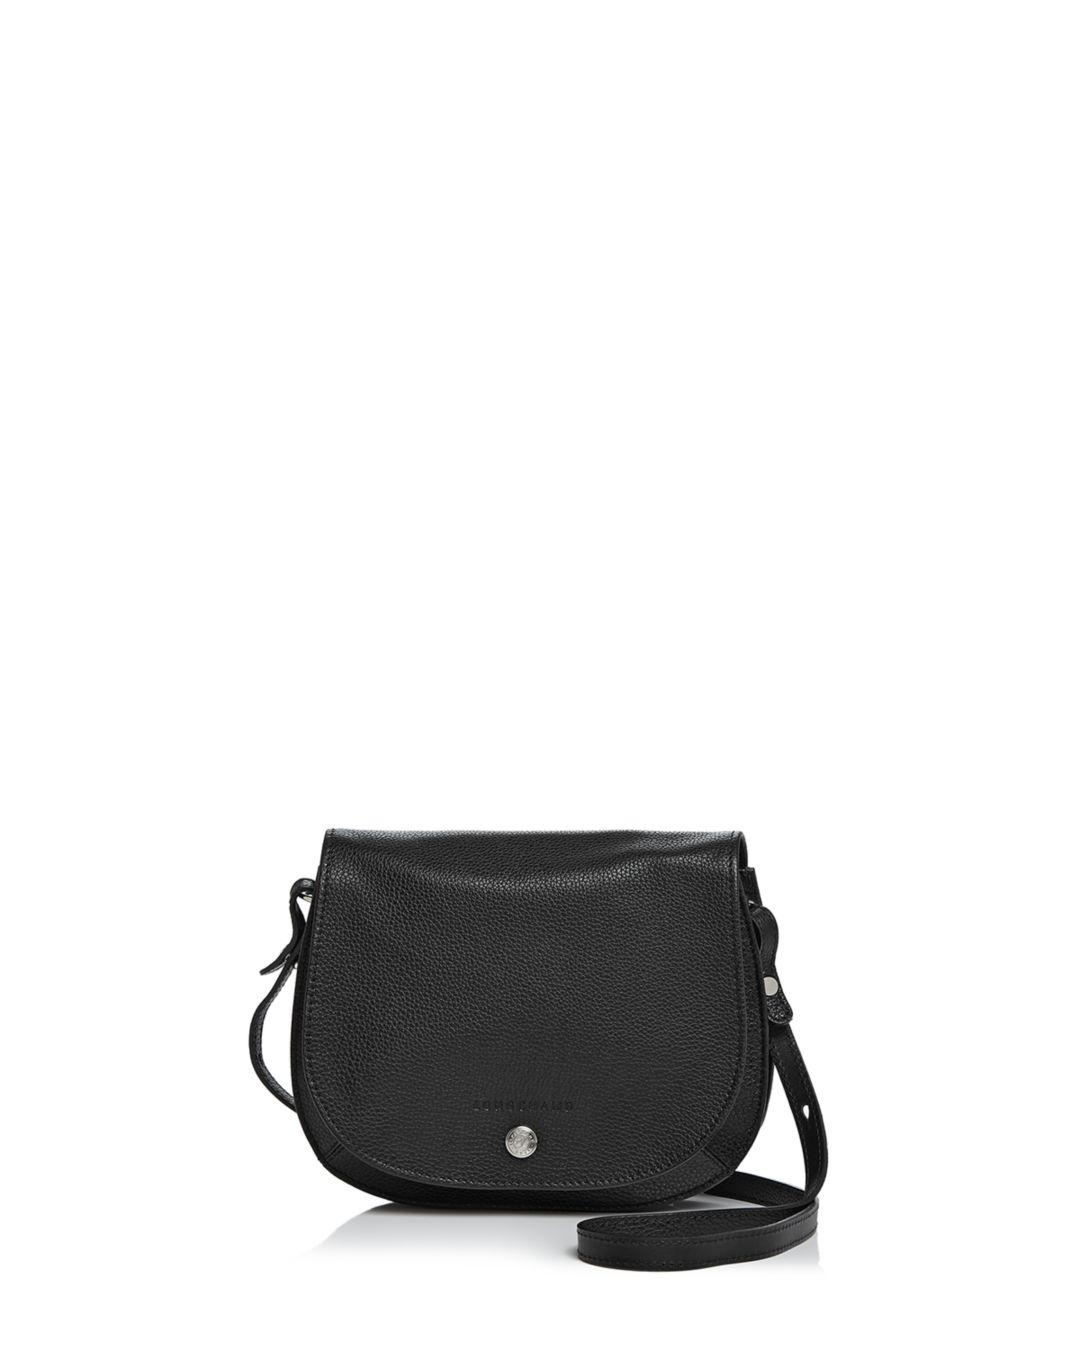 Lyst - Longchamp Le Foulonne Small Leather Saddle Handbag in Black ... ba1d91ded9ce6